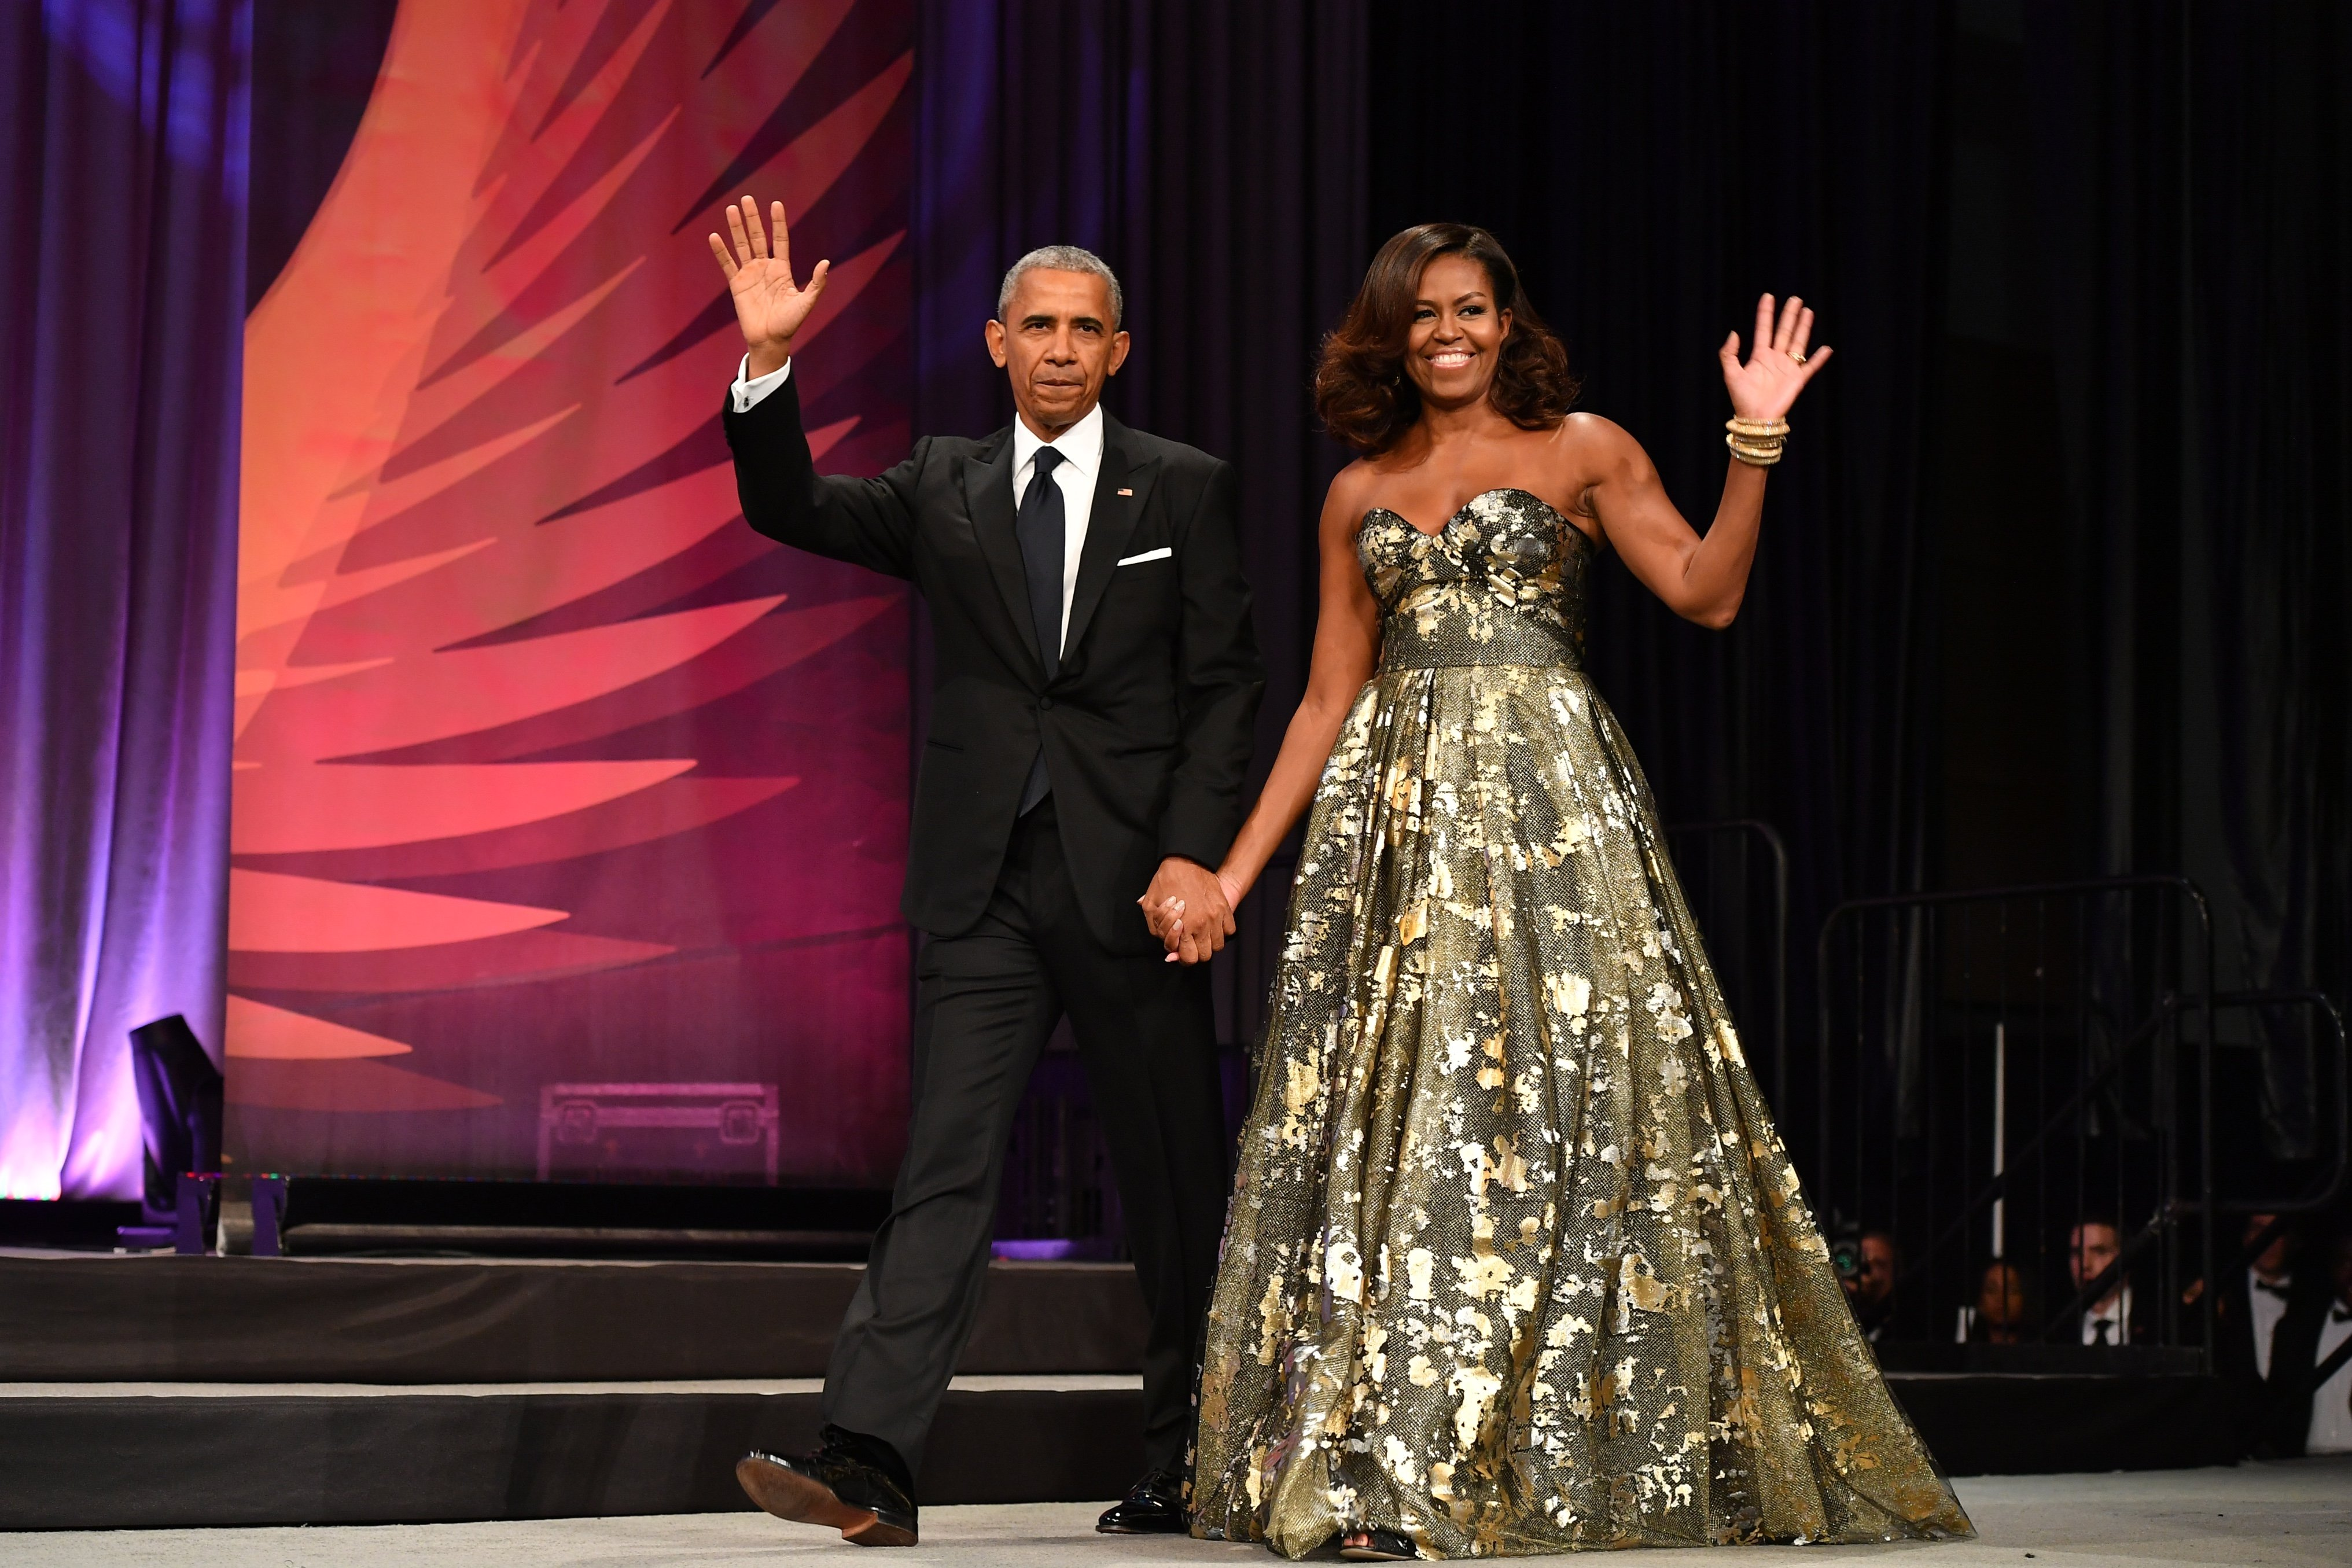 President Barack Obama and Michelle Obama arrive at the Phoenix Awards Dinner at Walter E. Washington Convention Center on September 17, 2016, in Washington, DC. | Source: Getty Images.